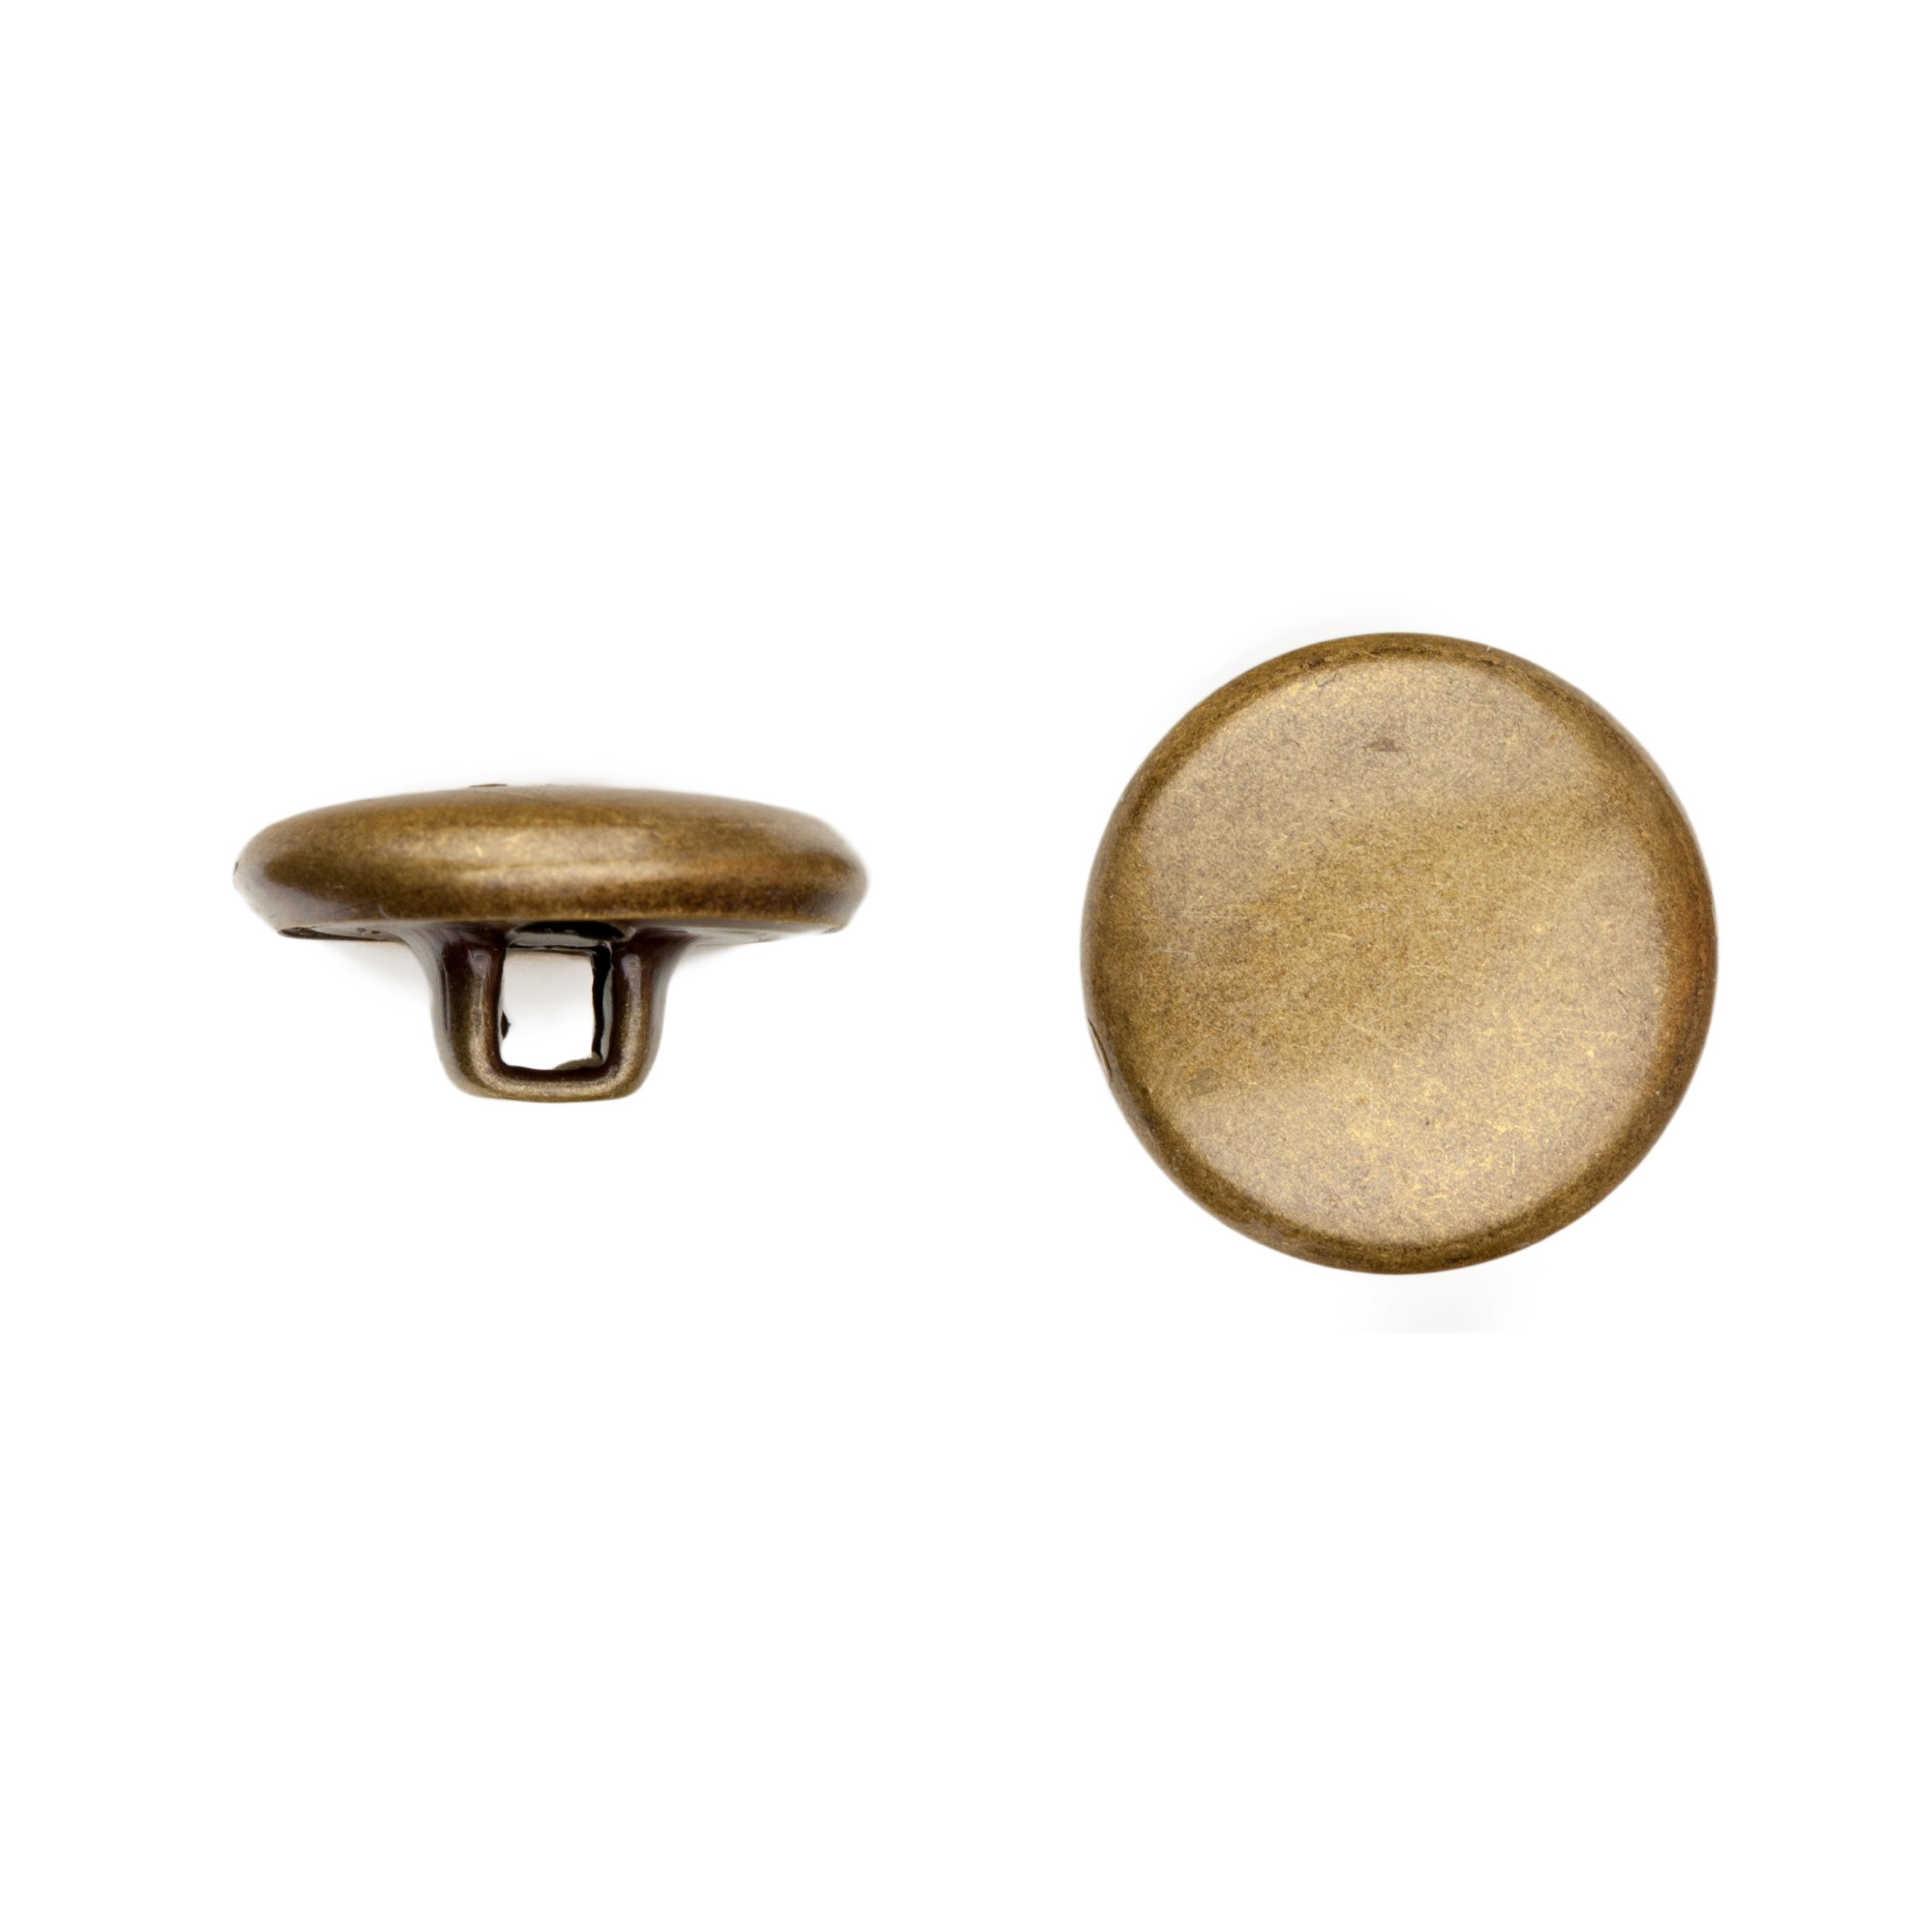 C&C Metal Products Corp 5002 Quarter Dome Metal Button, Size 36, Colonial Gold Finish, 36-Piece